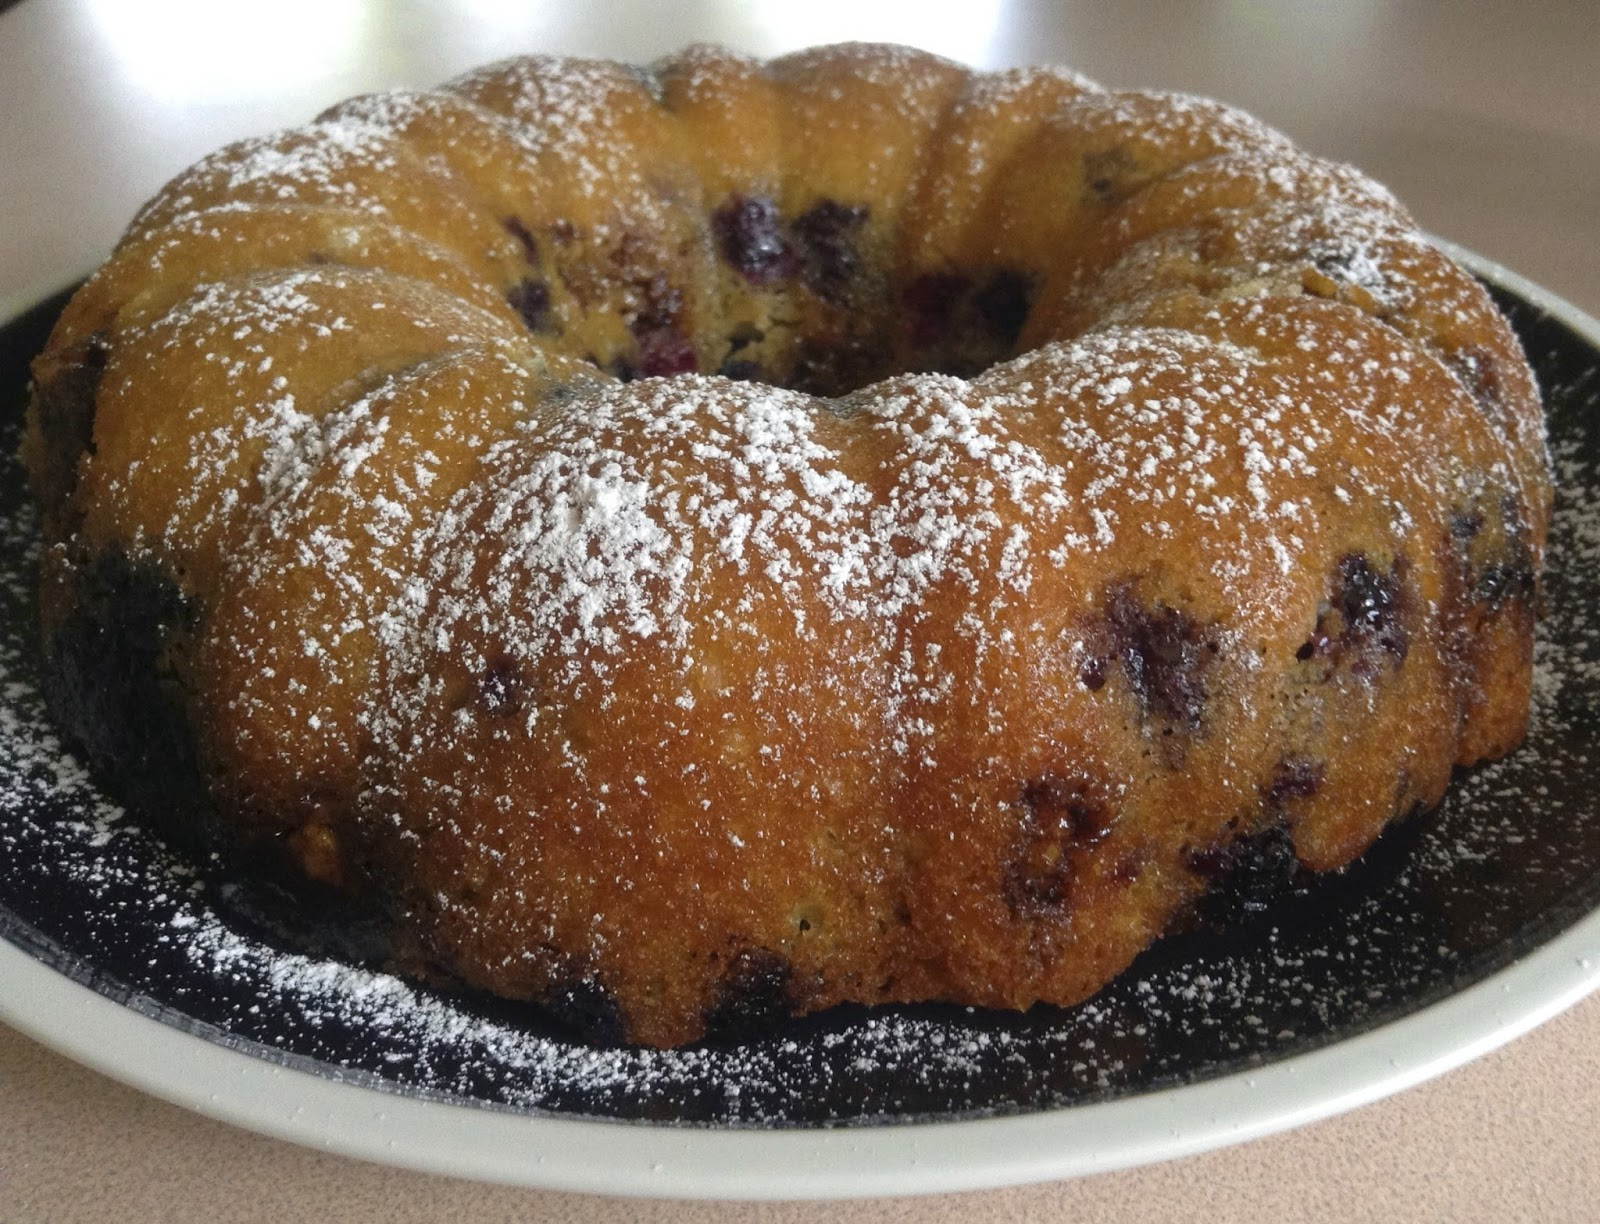 Nut Coffee Cake with Blueberries